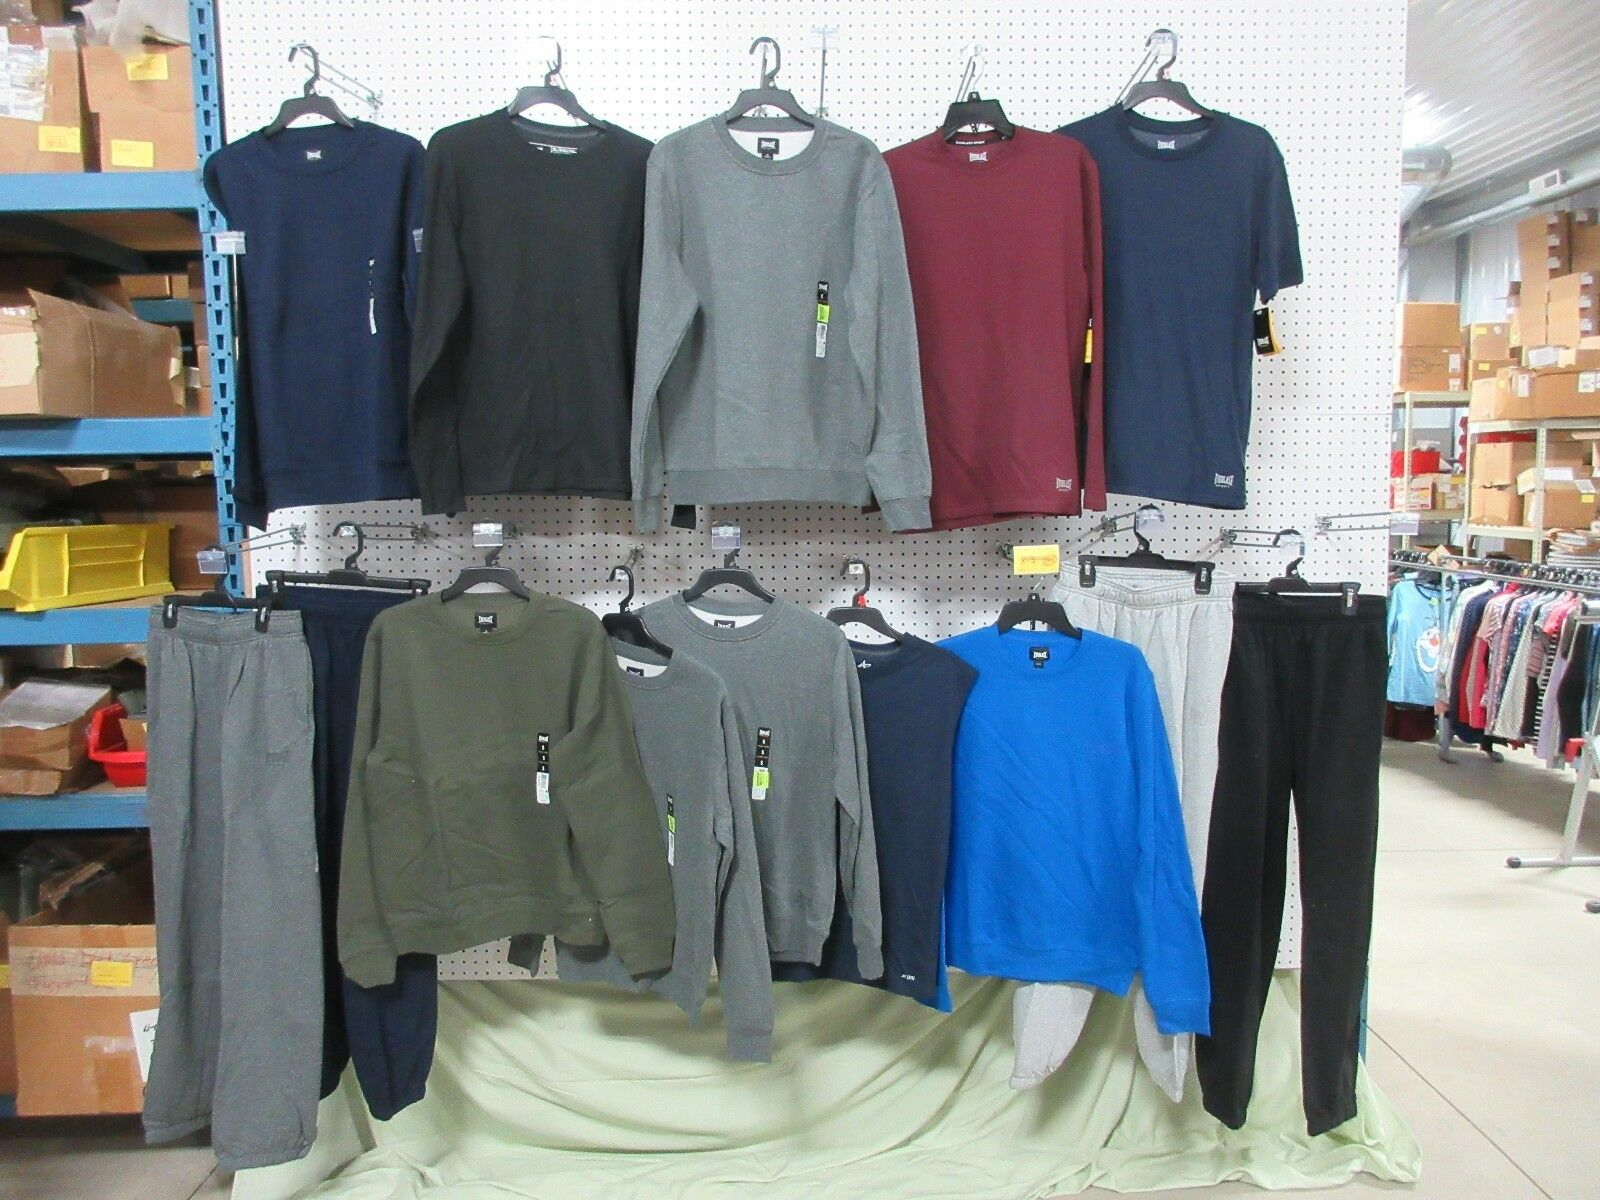 14 MENS SWEAT PANTS SWEATSHIRTS SIZE SMALL S ATHLETIC CLOTHES GYM LOUNGE LOT